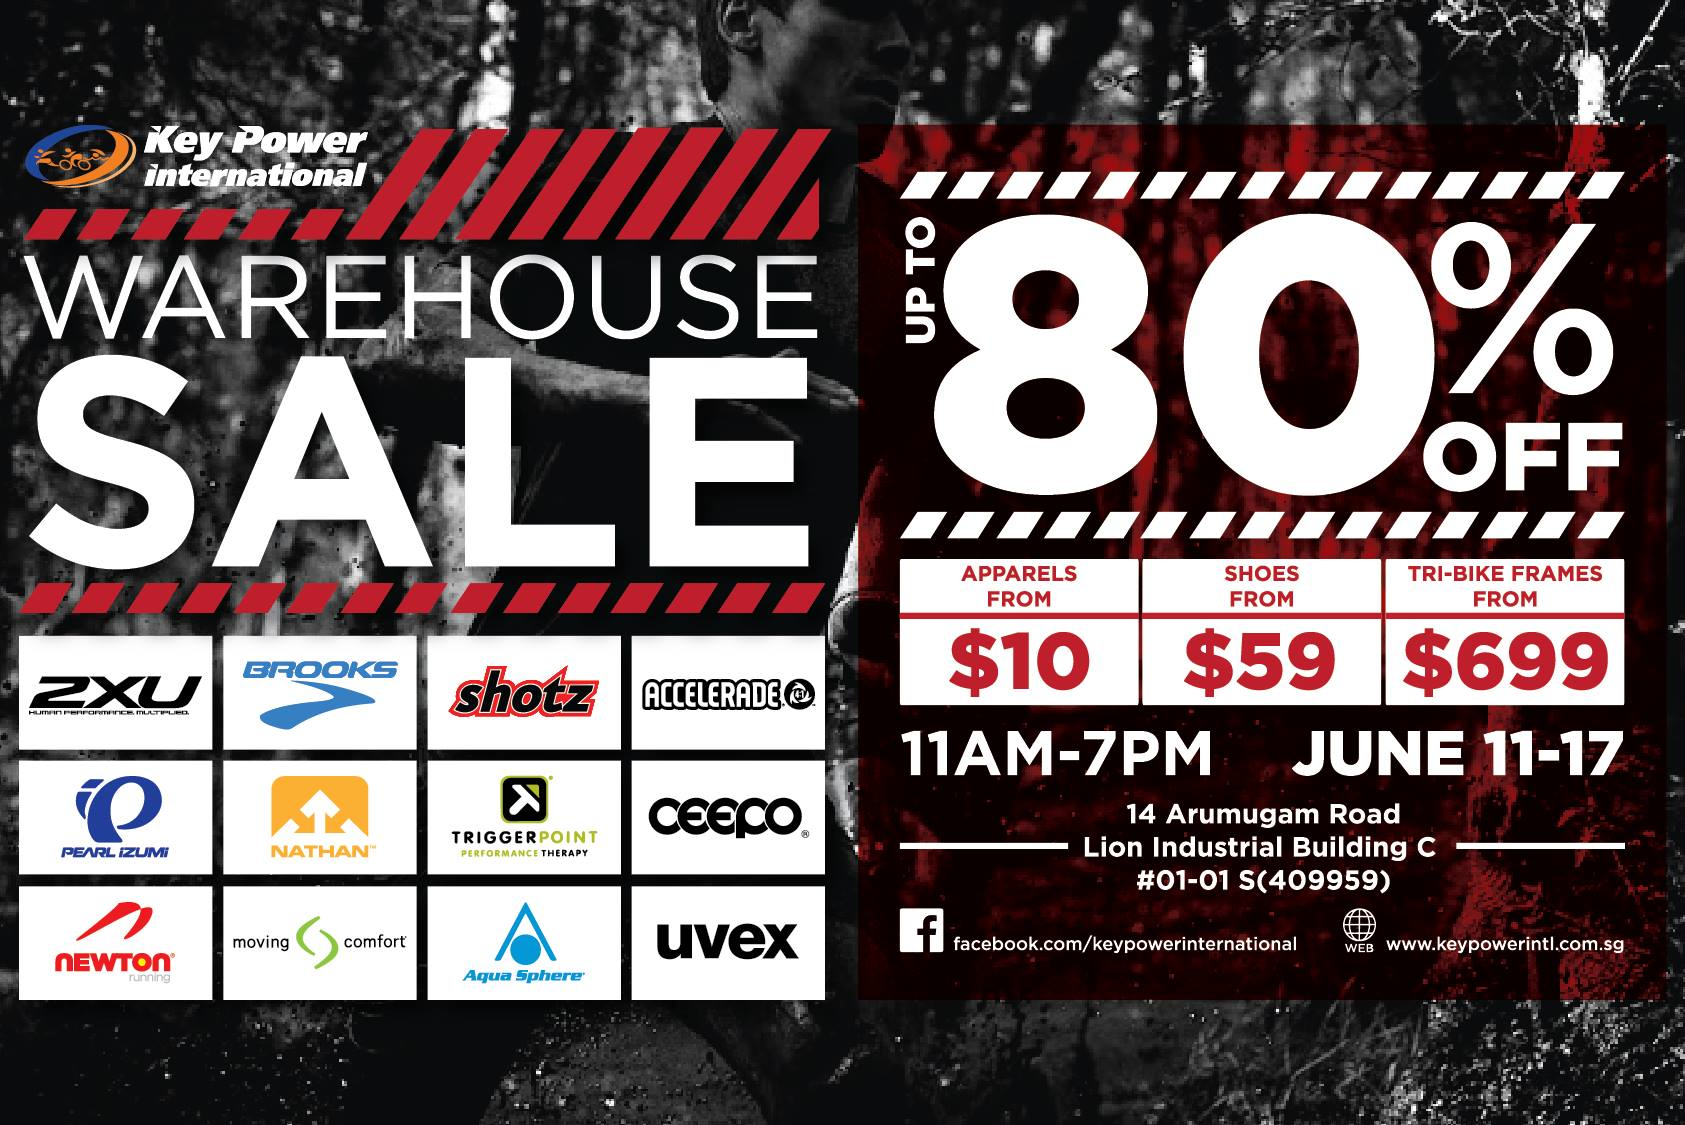 Key Power International Warehouse Sale Returns With Prices From $10